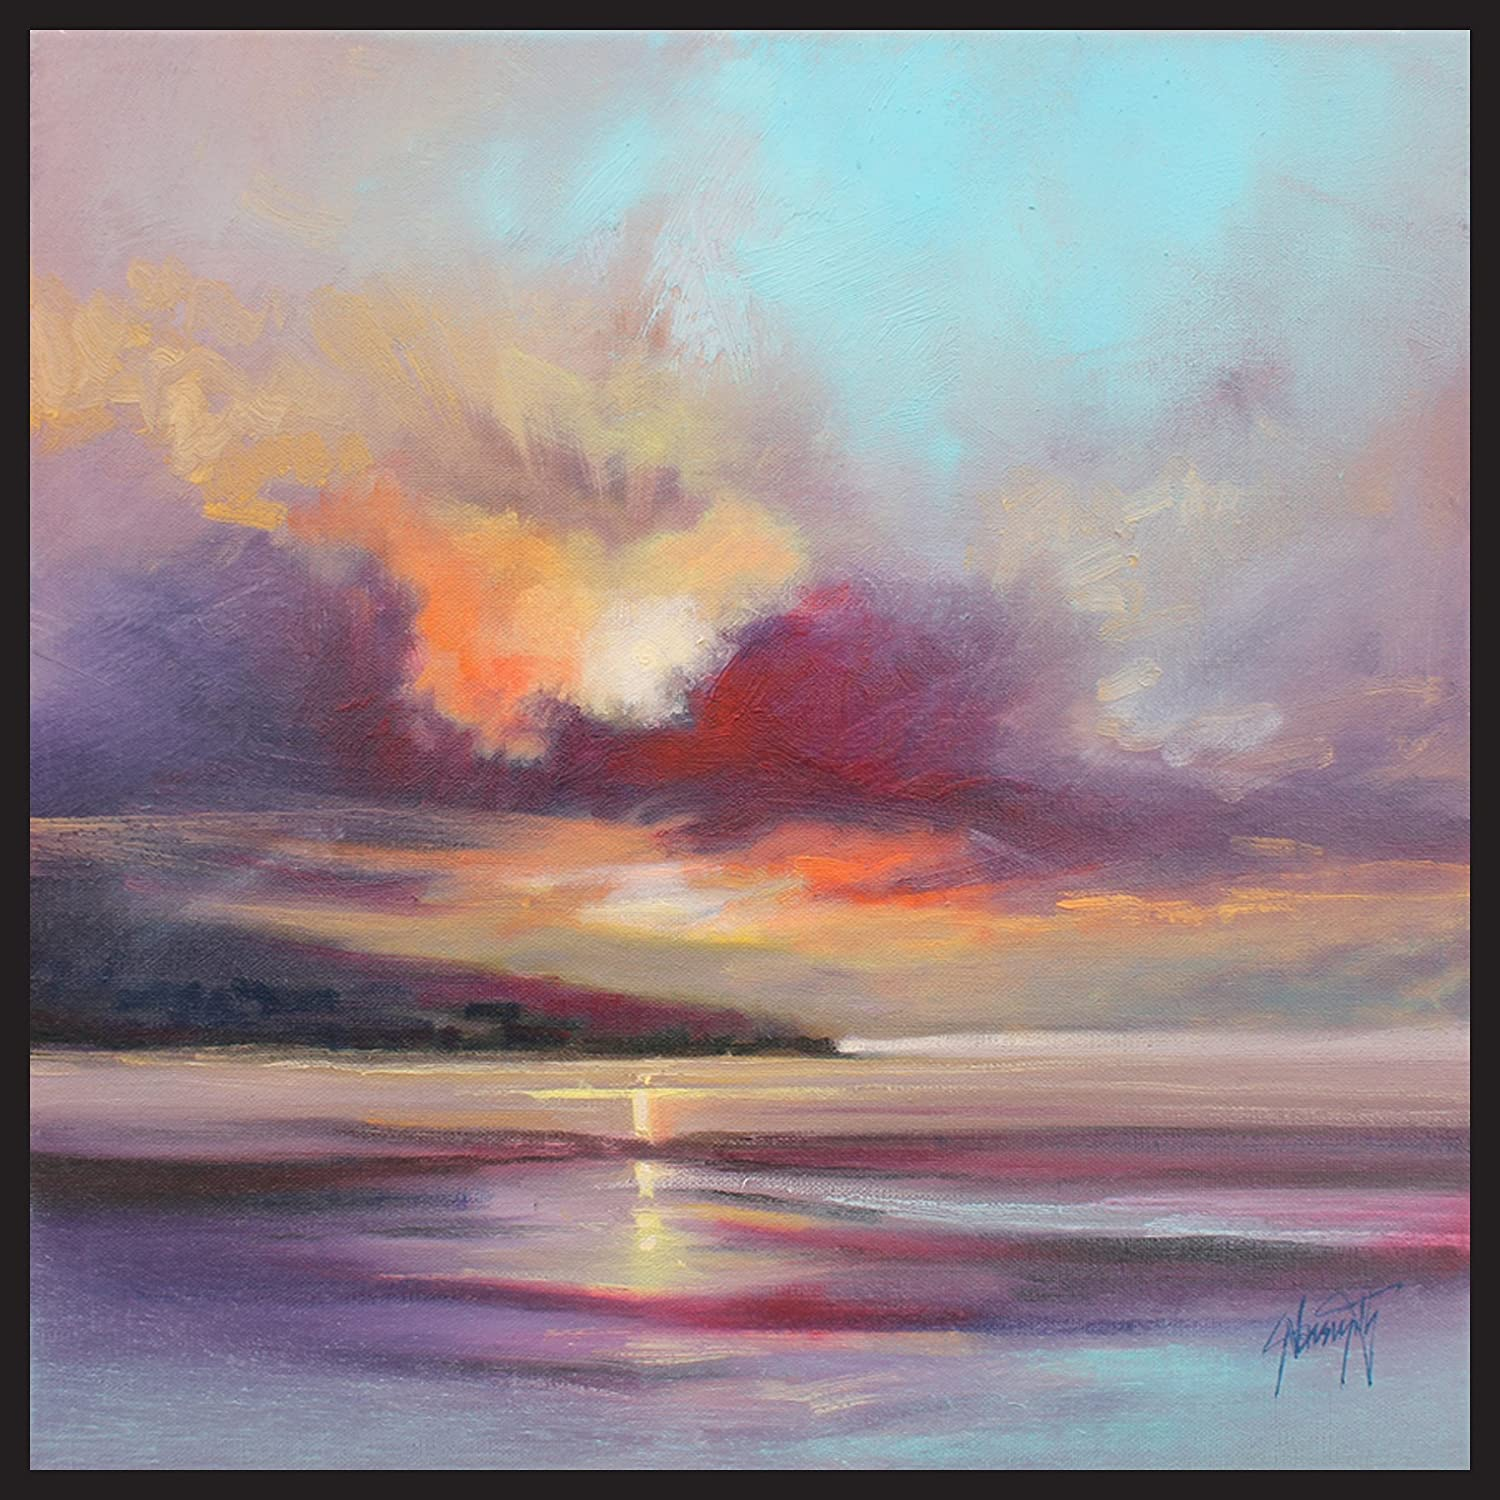 ArtMaison.ca allery Wrapped 25.5-Inch by 25.5-Inch Framed Gel Brush Finish Canvas Cloudy Beach Scott Naismith